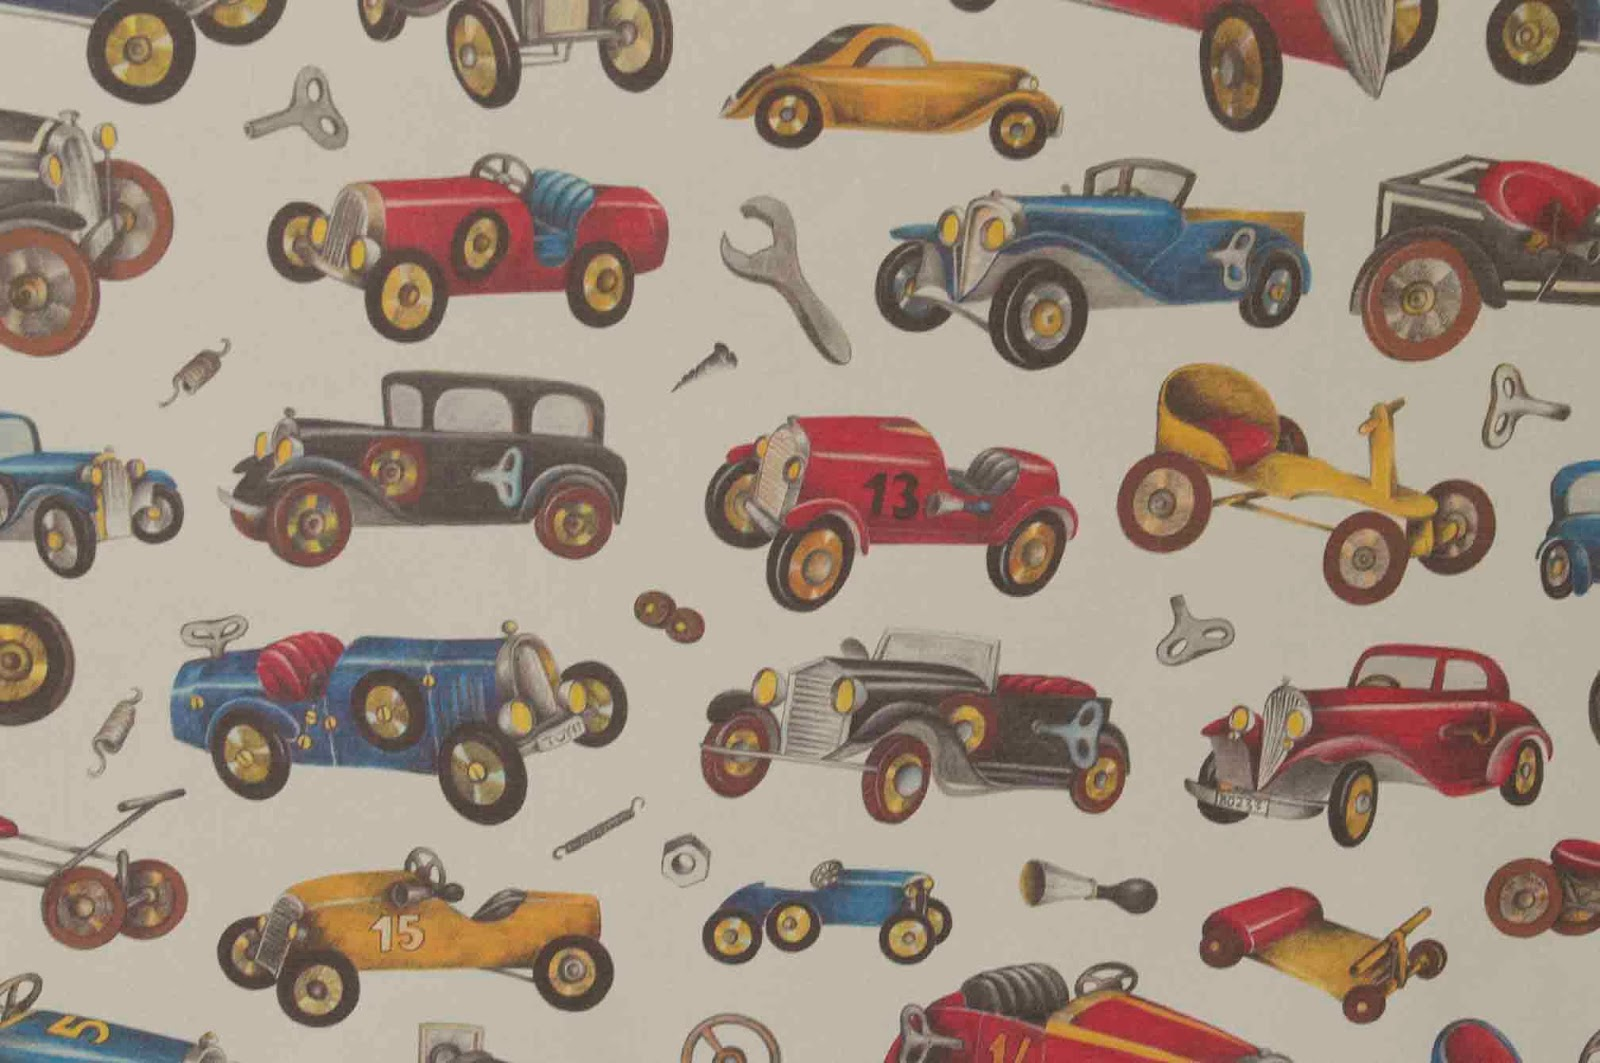 Suitbook, coches, juguete hojalata, papel, papier, carte, tin toy